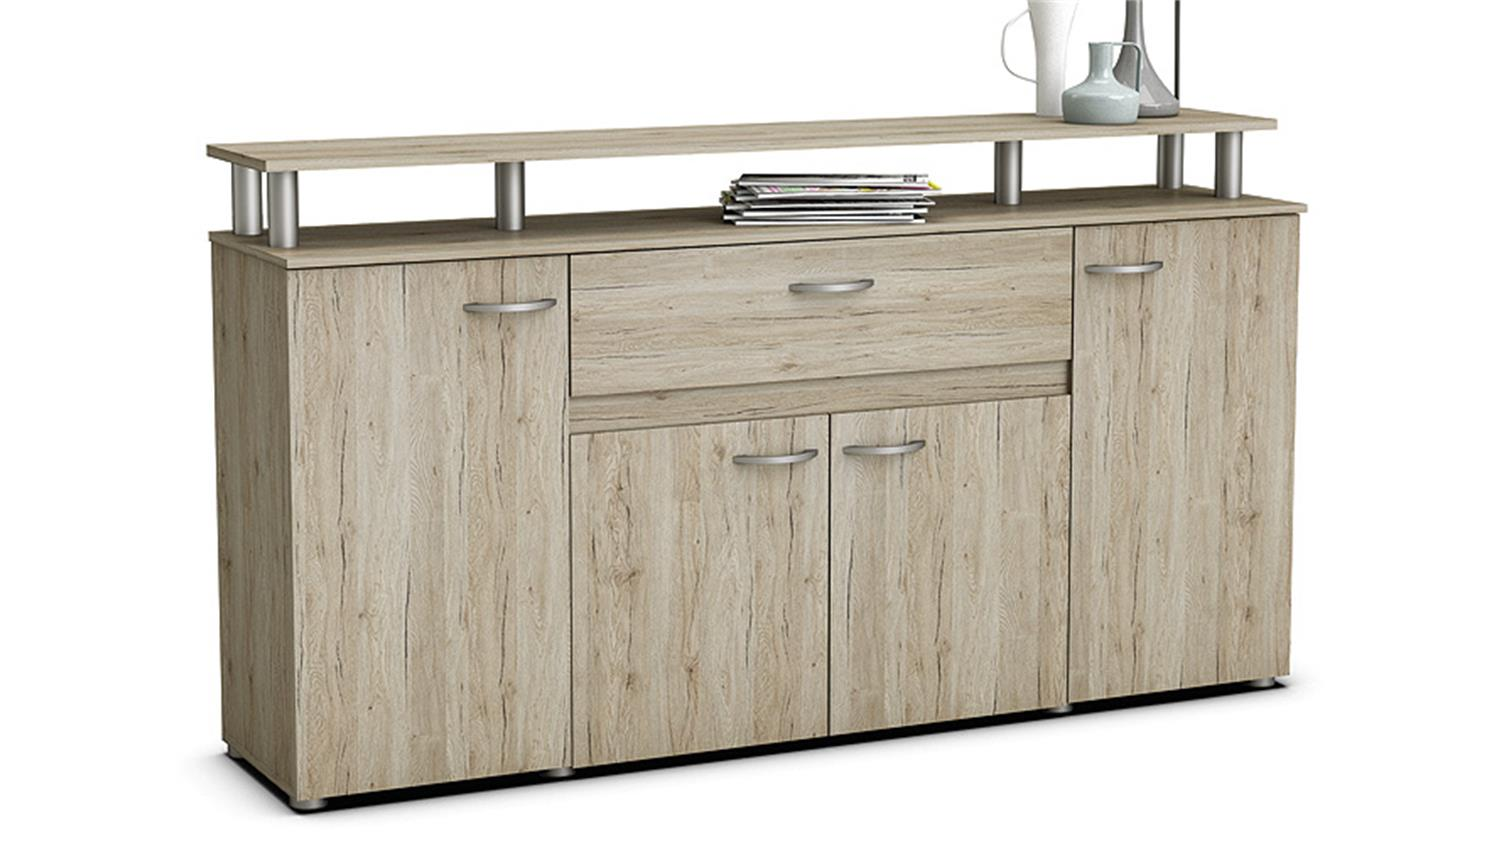 anrichte kommode excellent wei hochglanz full size sideboard with wine rack oak kommode schema. Black Bedroom Furniture Sets. Home Design Ideas